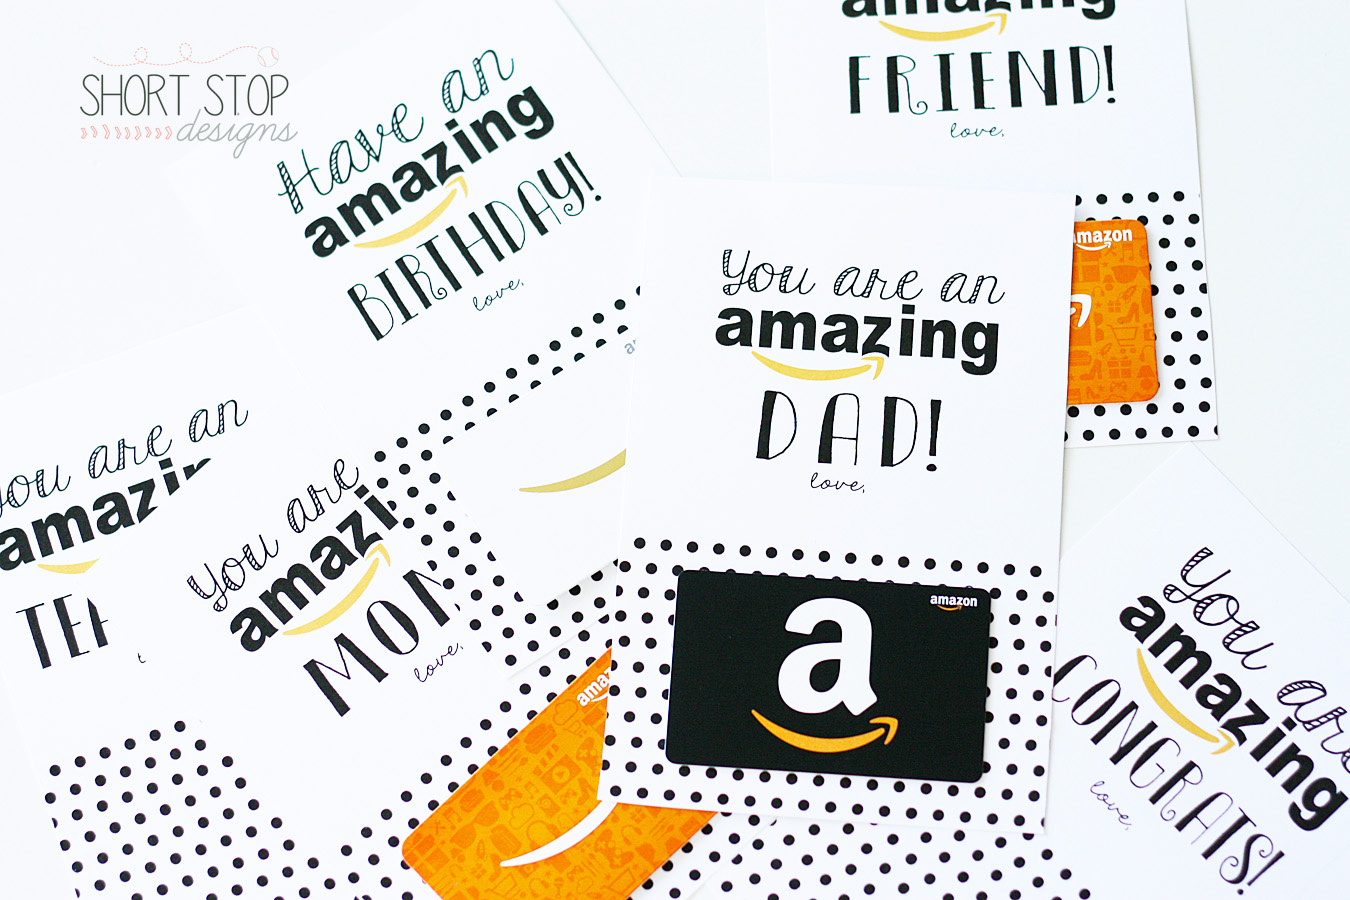 photo about Amazon Printable Gift Card titled Amazon Reward Card Printables Brief Close Patterns